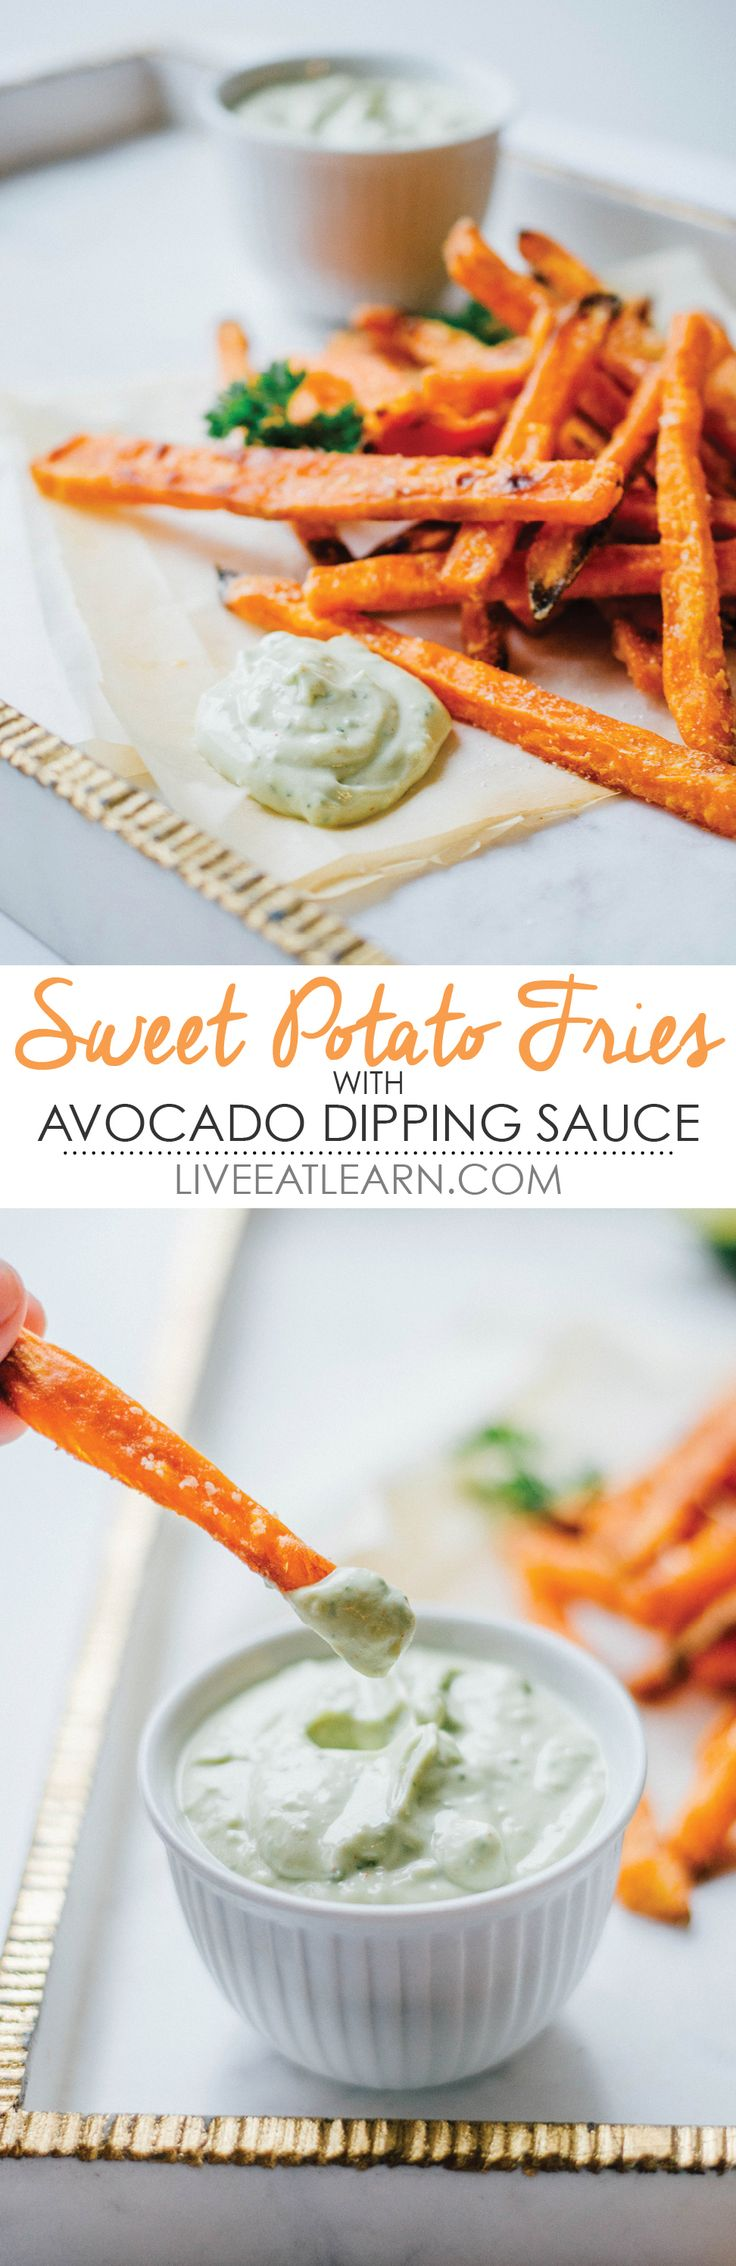 Crispy baked sweet potato fries with Greek yogurt avocado dipping sauce. A healthy fry recipe to quench your junk food snack craving! // Live Eat Learn